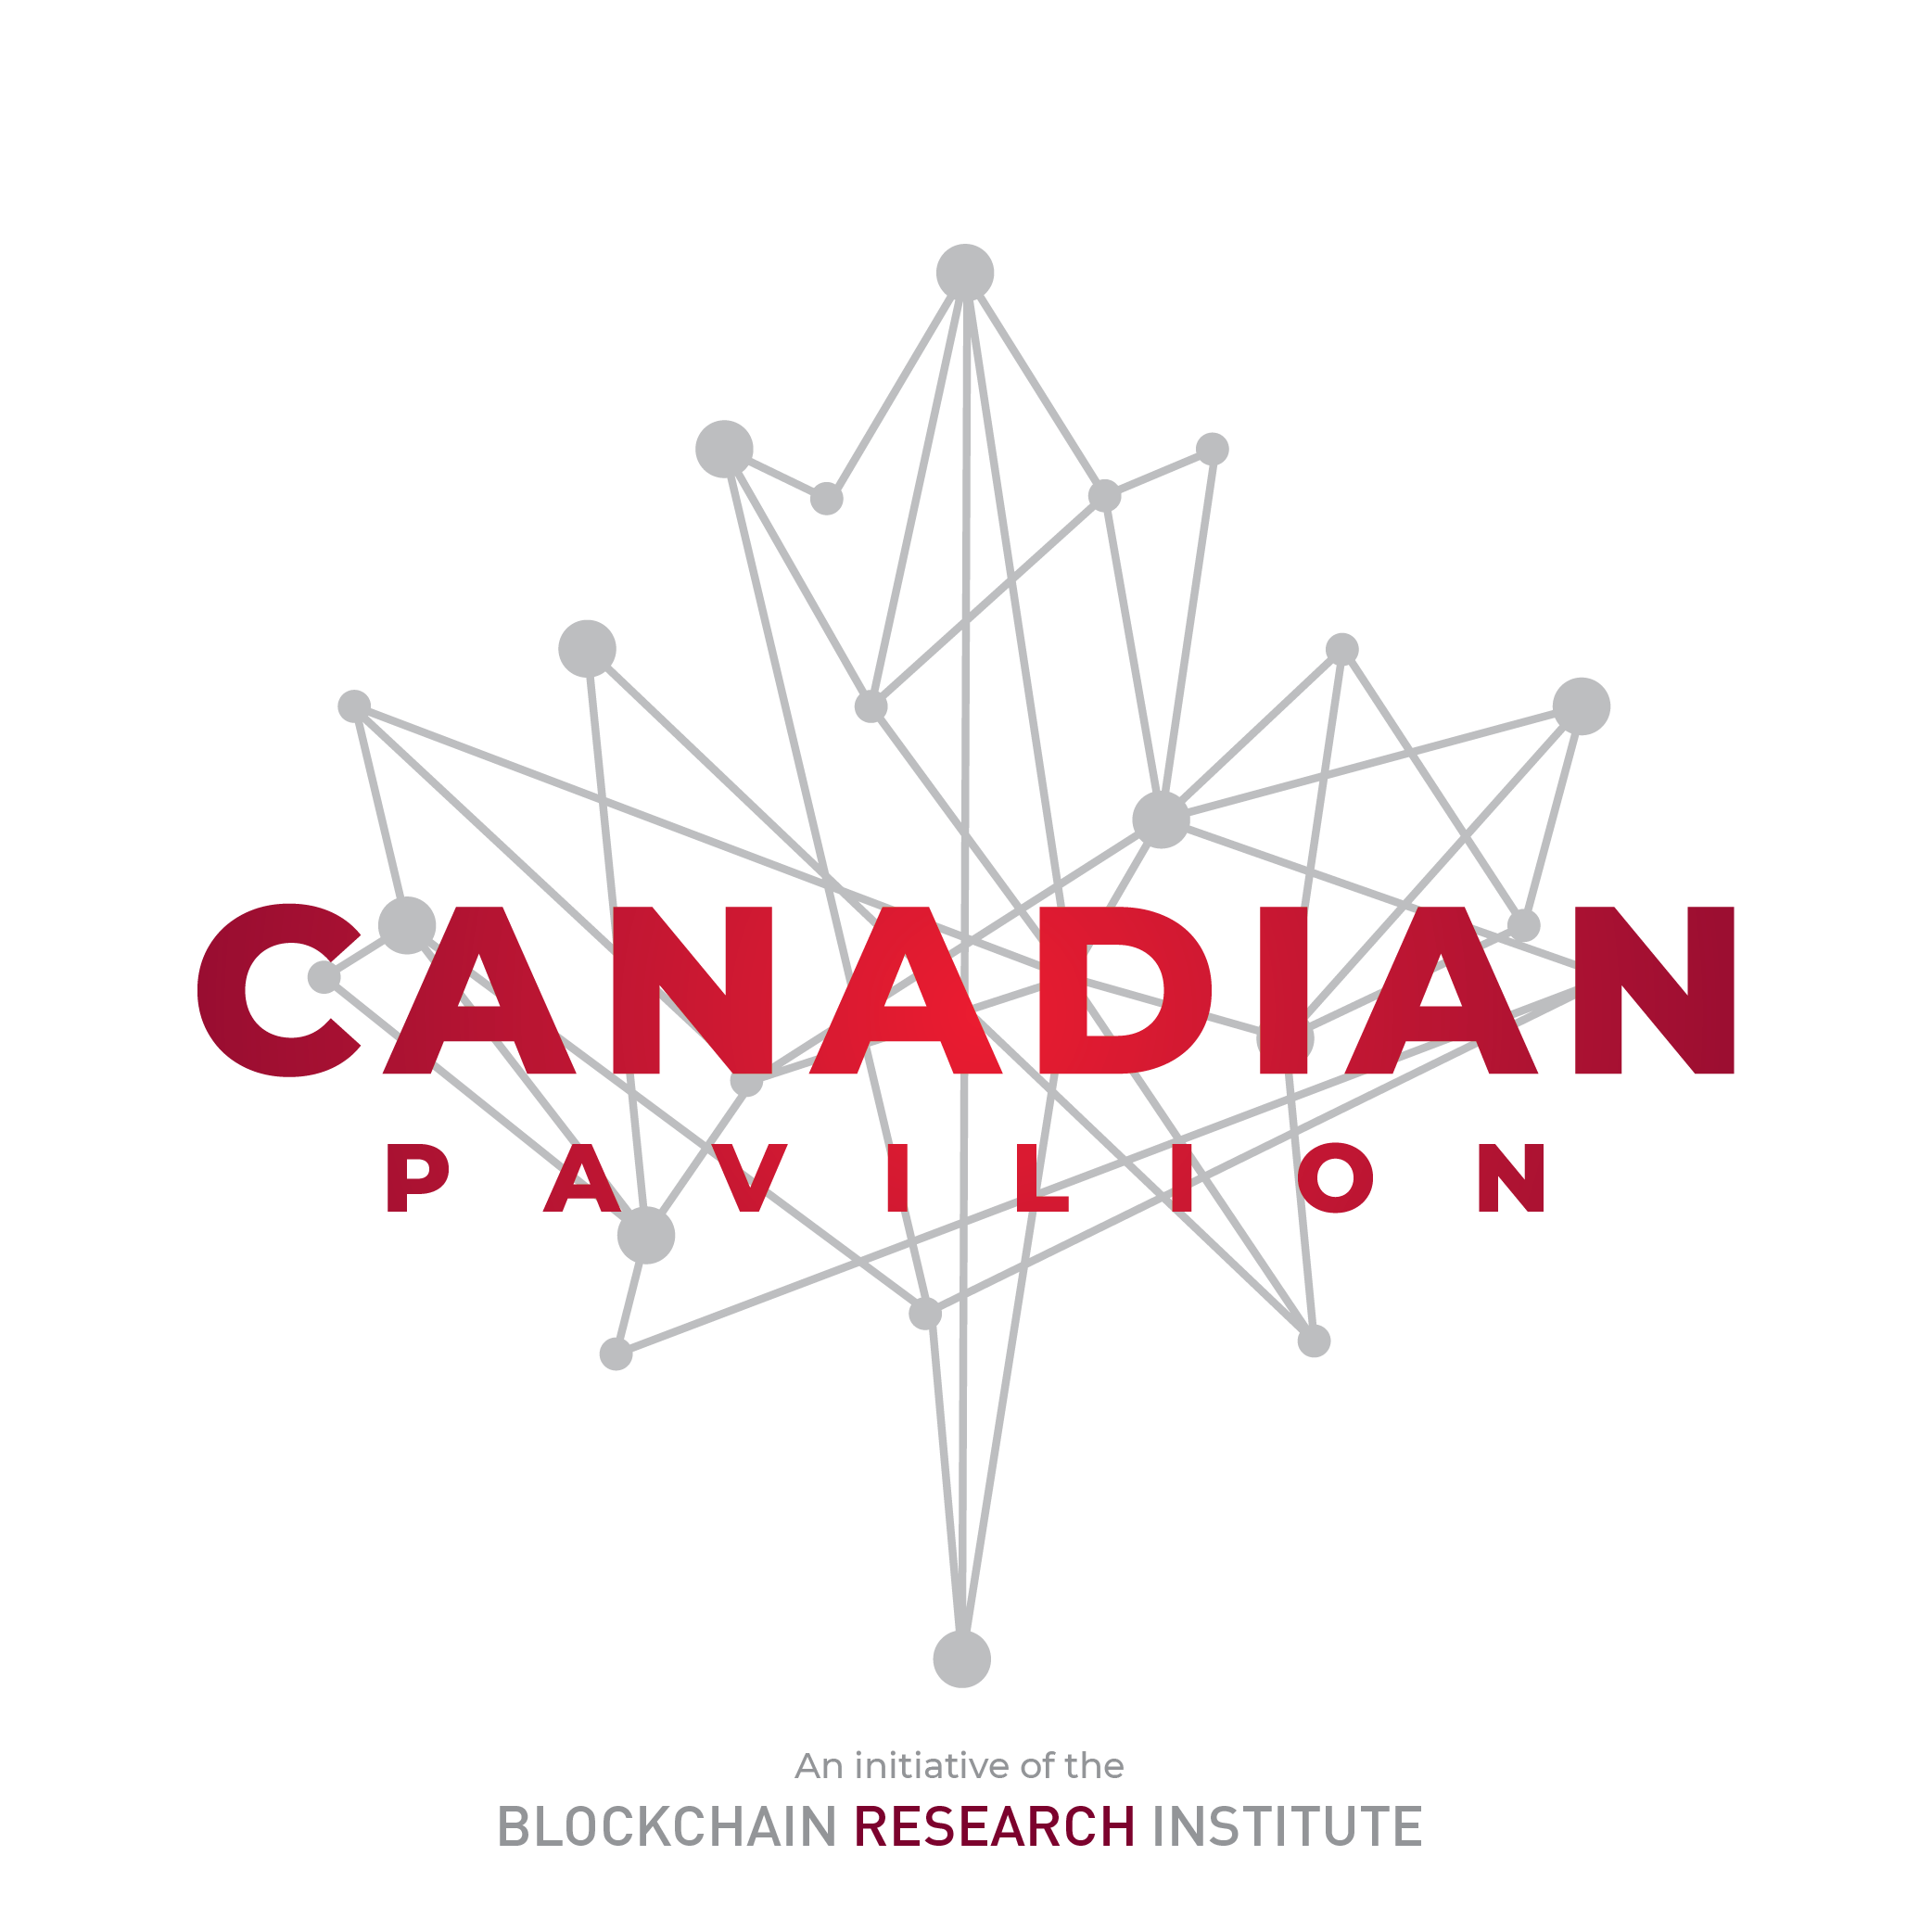 The Canadian Pavilion at Consensus 2018